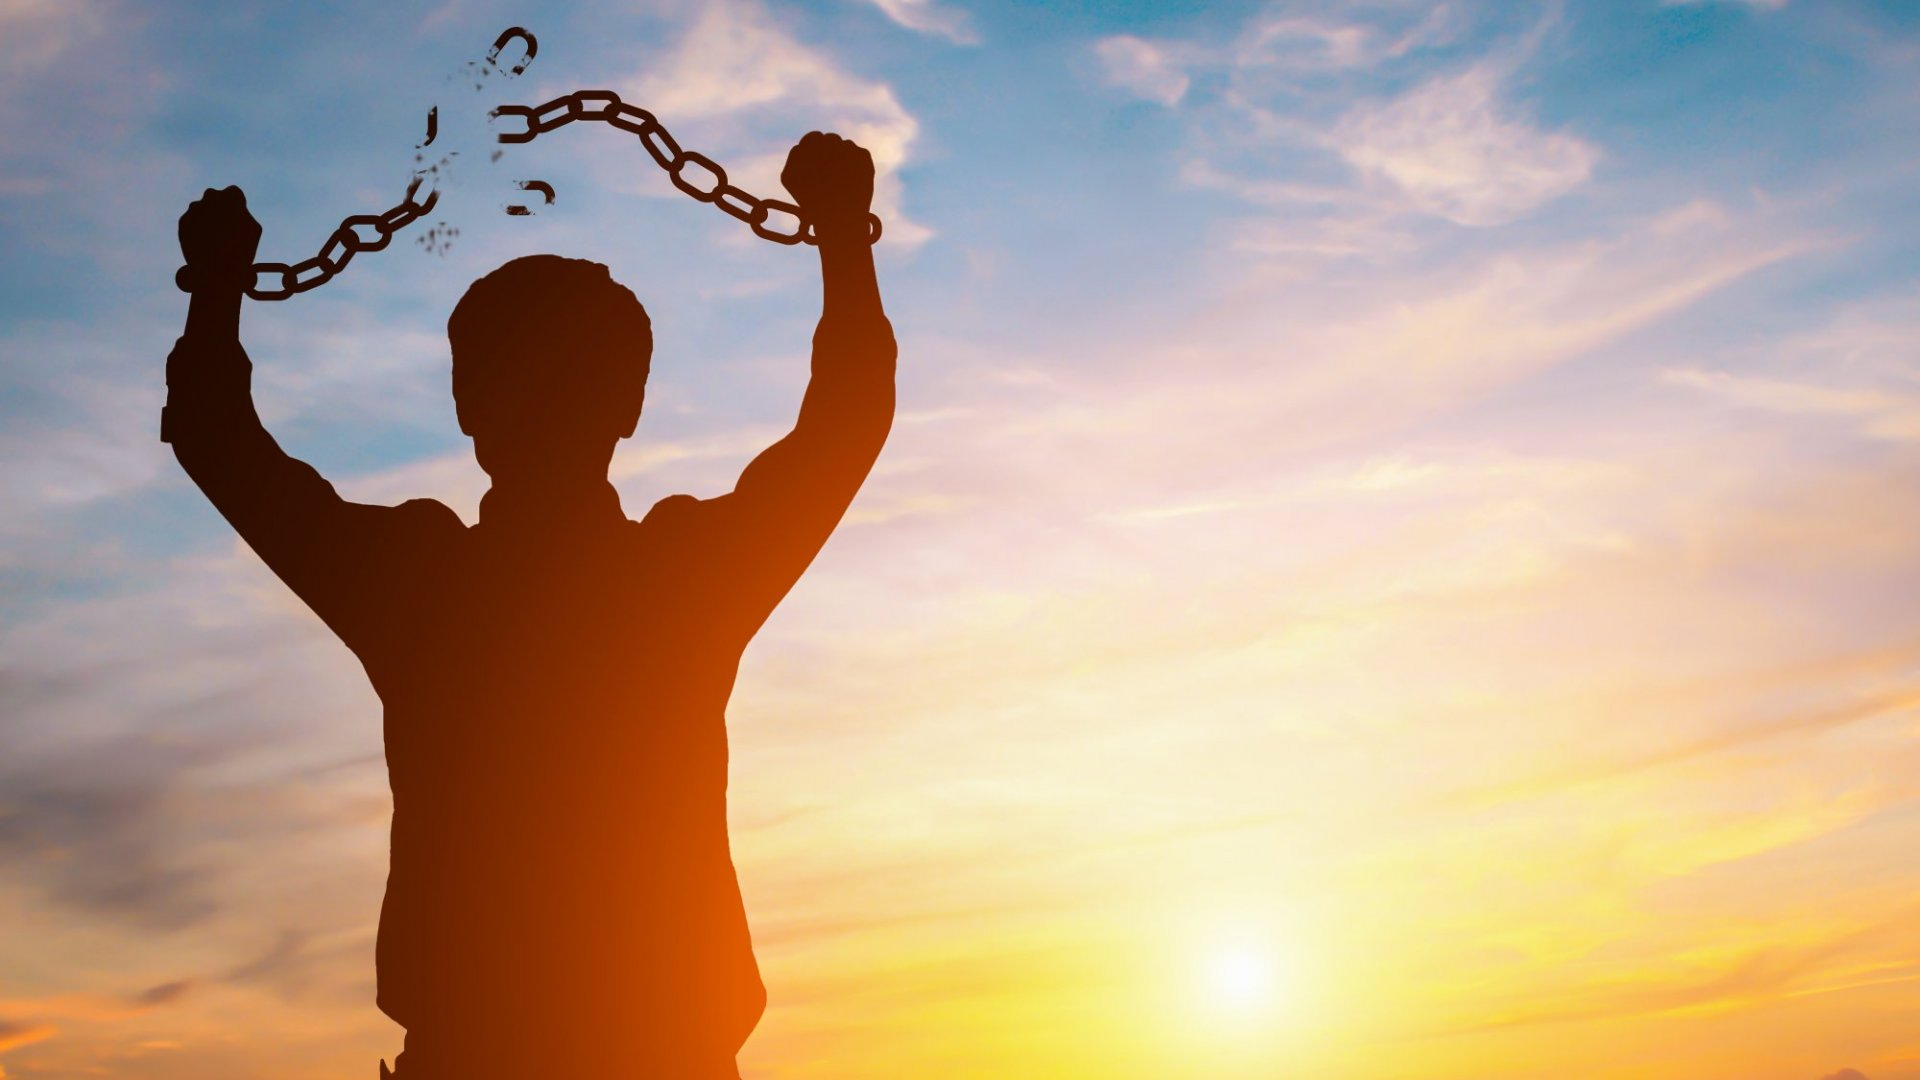 5 Lessons I Learned After 10 Years in Prison (and How I Plan to Use Them)